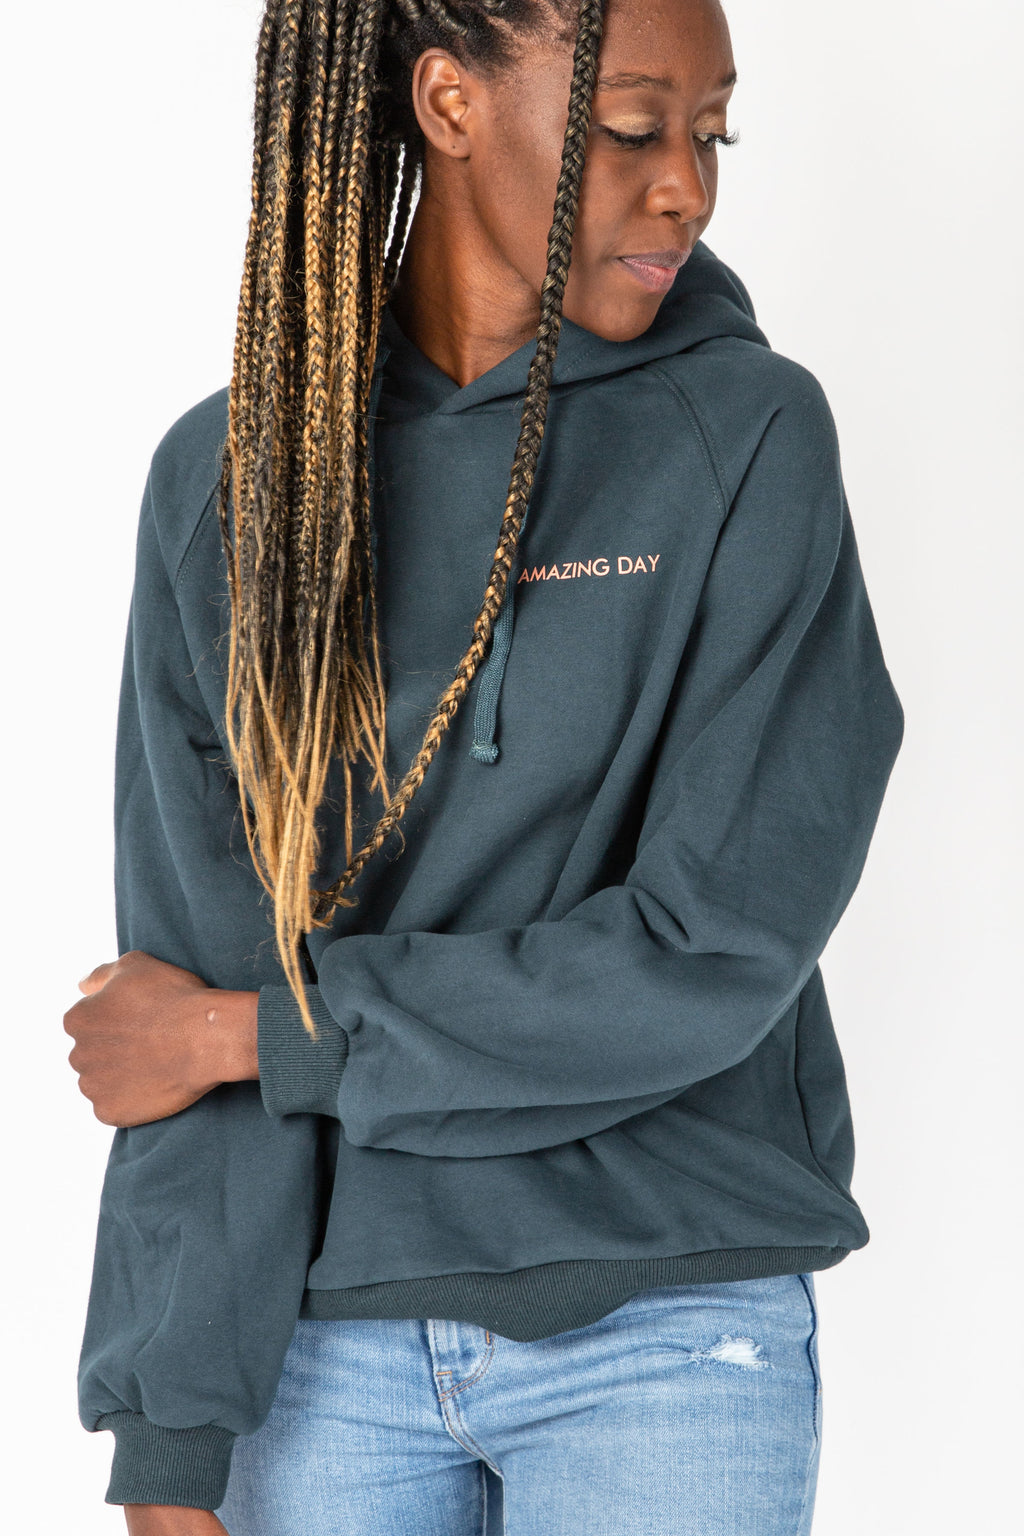 The Amazing Day Sweatshirt in Green, studio shoot; front view